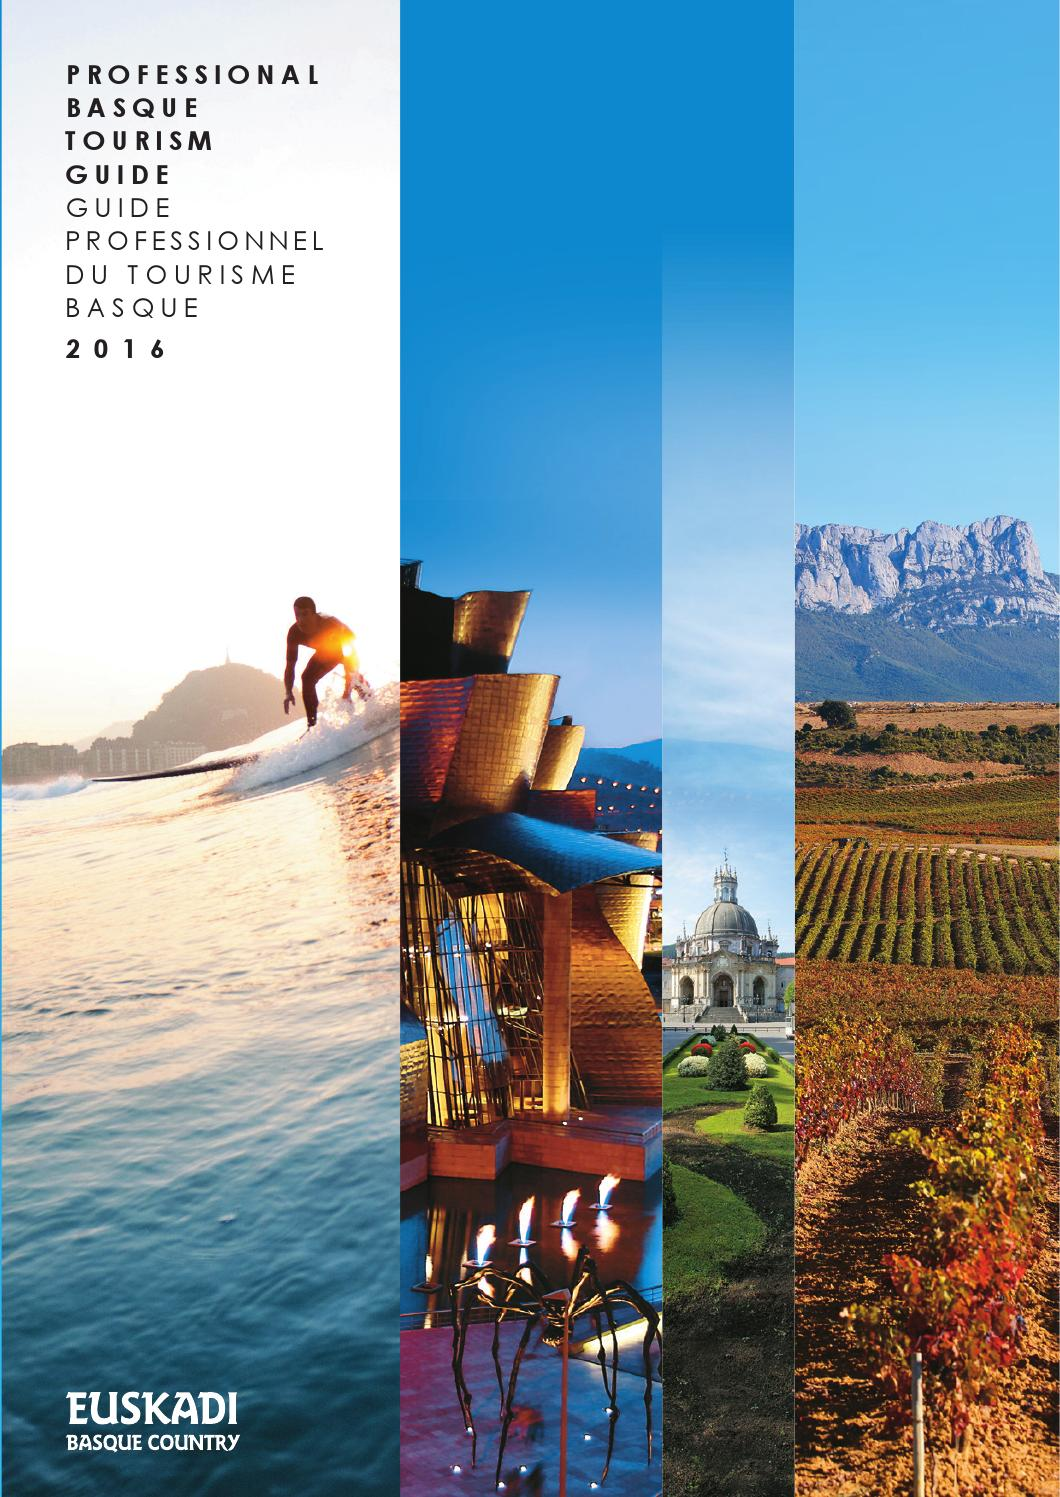 12591306 Professional Basque Tourism Guide - Guide Professionel du Tourisme Basque  by Dirección de Turismo y Hostelería del Gobierno Vasco - issuu